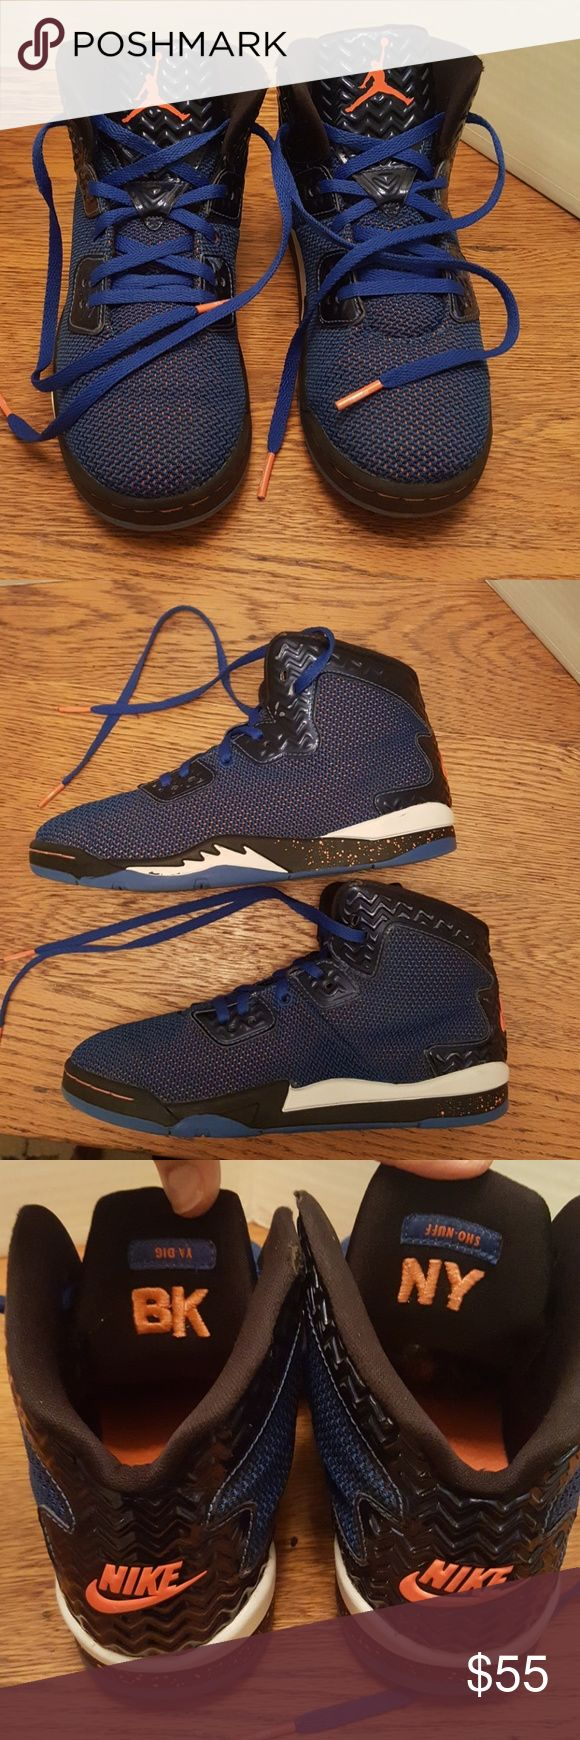 NIKE AIR JORDAN HIGH TOPS very rare Limited Nike Air Jordan  sho nuff NY ya dig BK very rare blue and black tennis shoes with orange Under the blue. Boys size 3. Excellent condition. Two minor wear marks on the inside black top. Each less than 5 mm. Smoke-free pet-free home Nike Air Jordan Shoes Sneakers